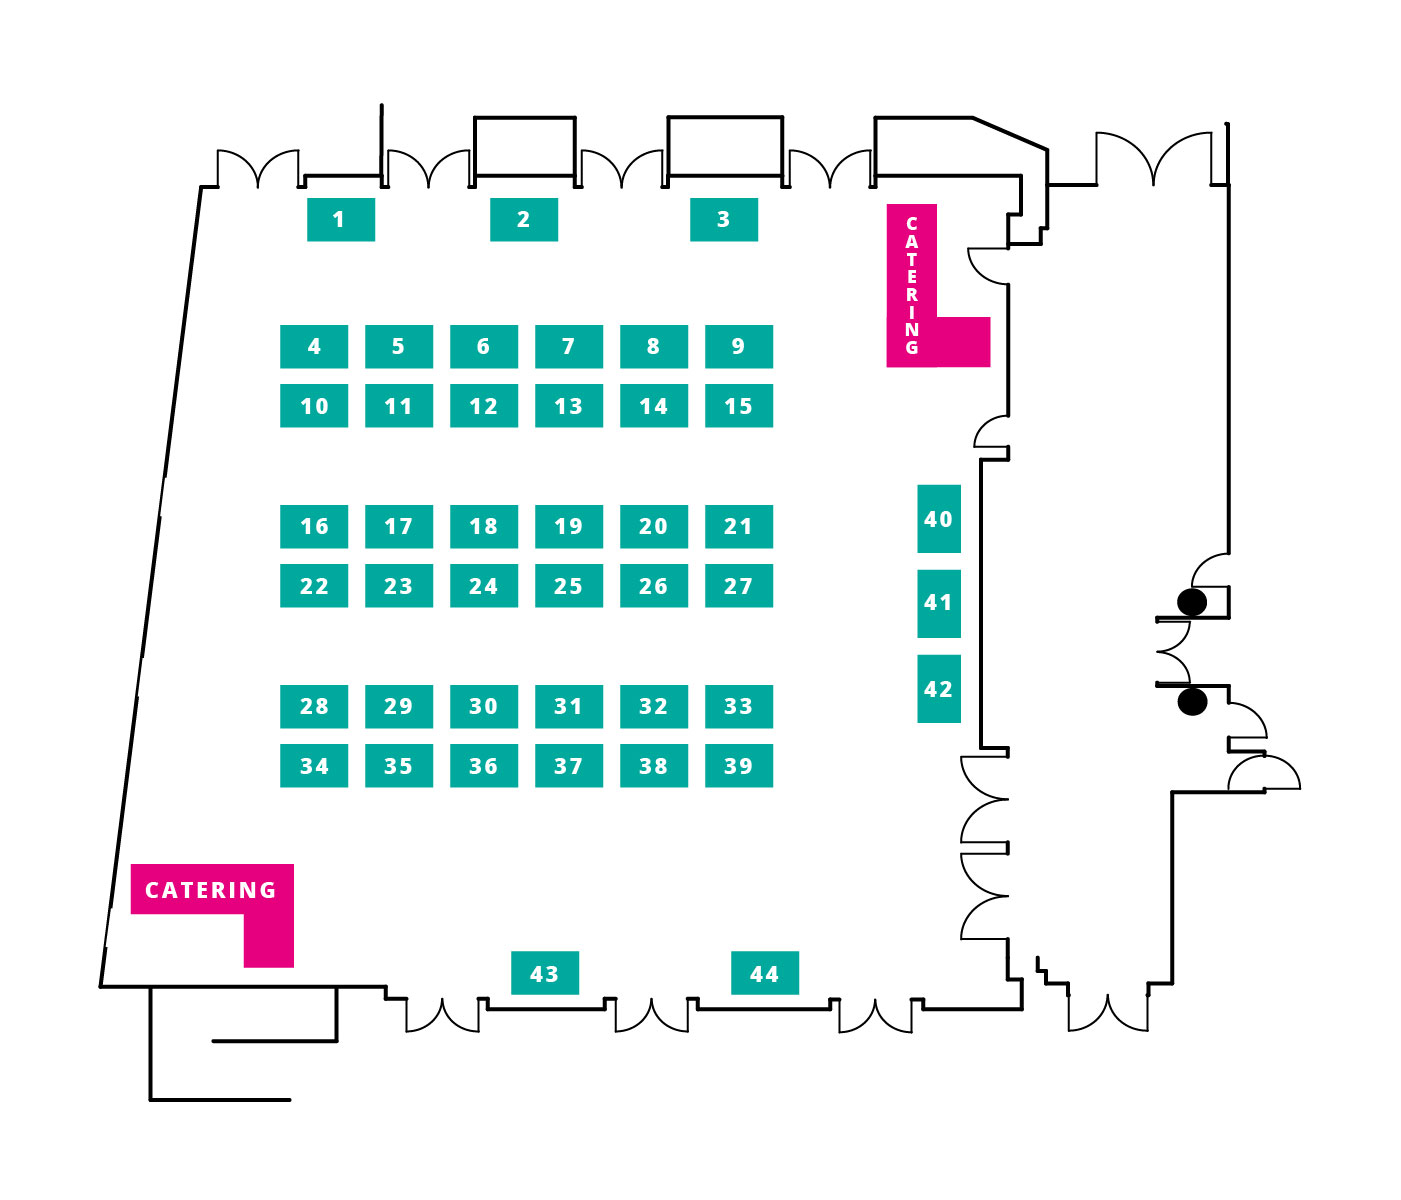 International Maternity Expo 2019 Exhibition Floor Plan